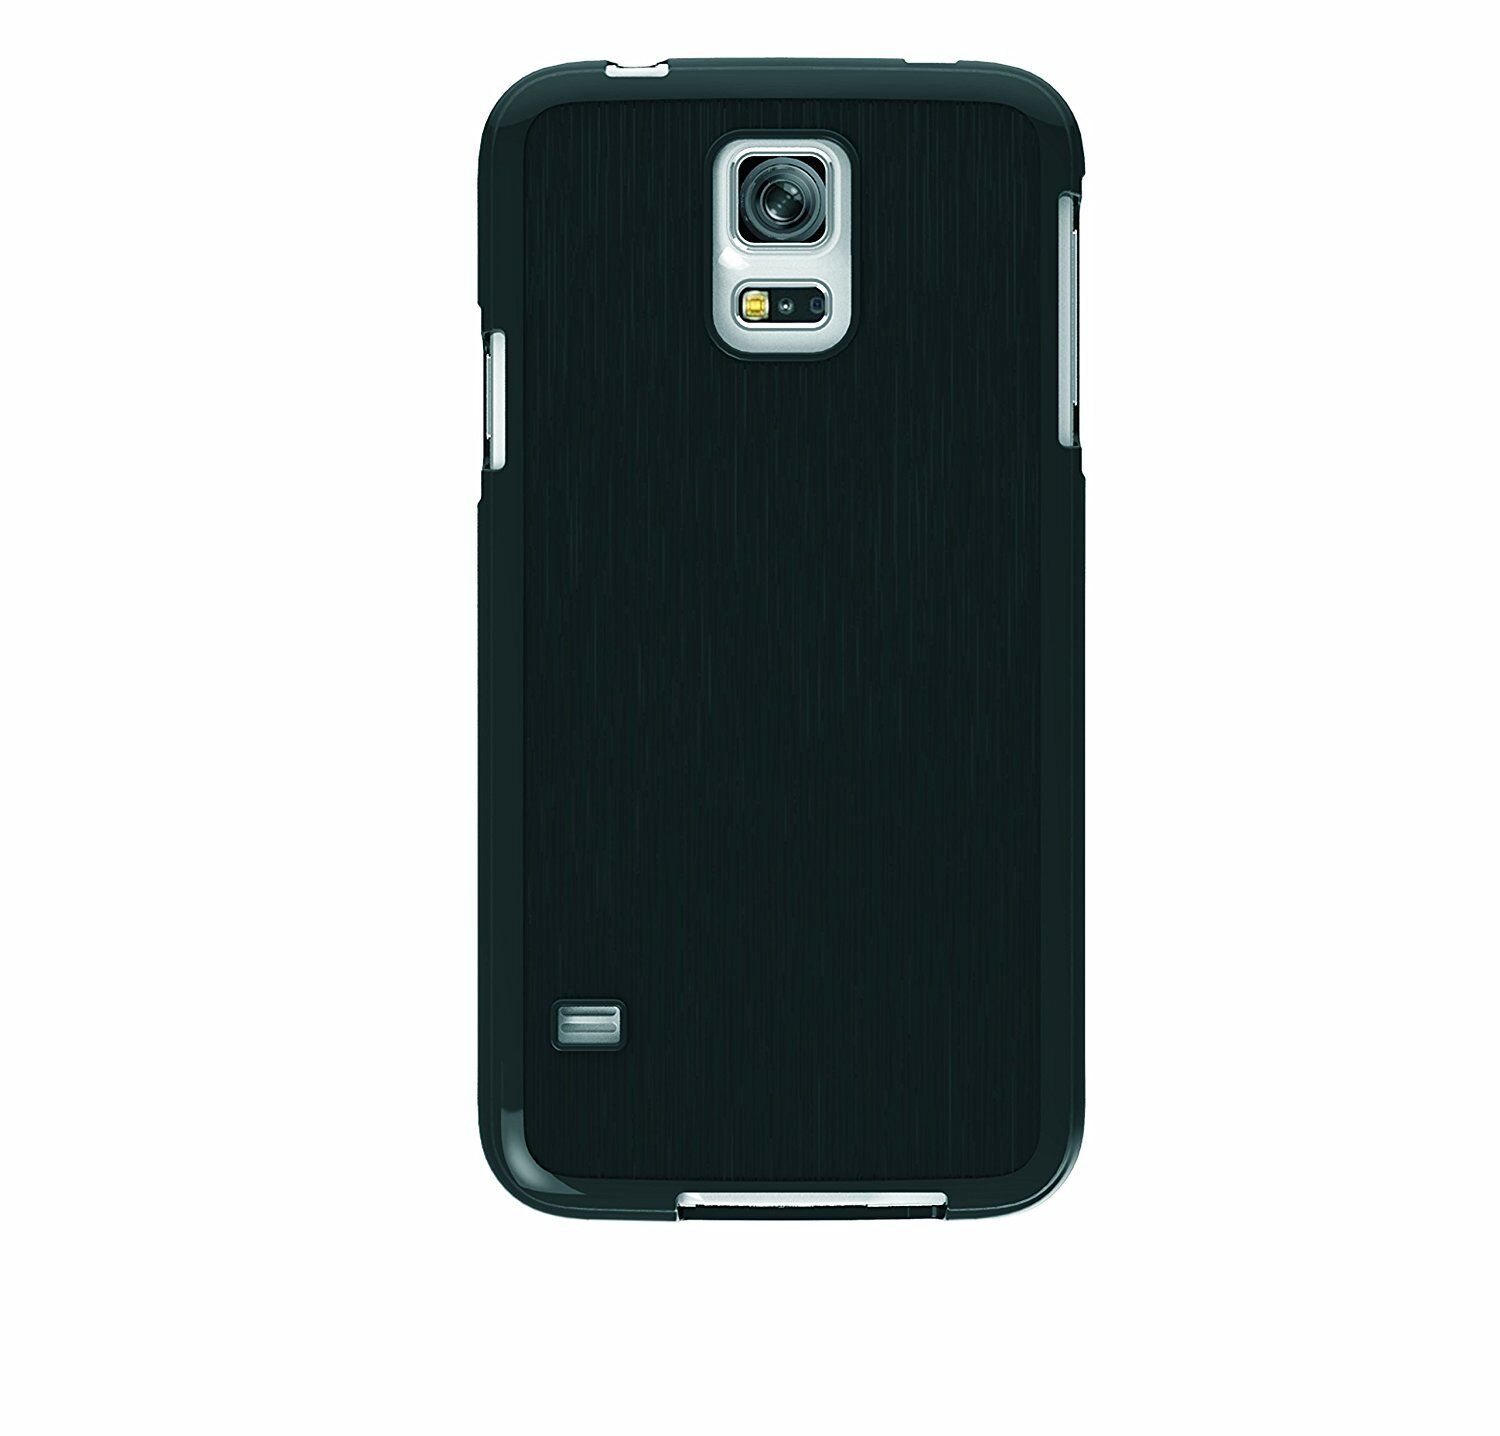 OEM Body Glove Samsung Galaxy S5 Black Suit Up Fusion Steel Shell Cover Case New